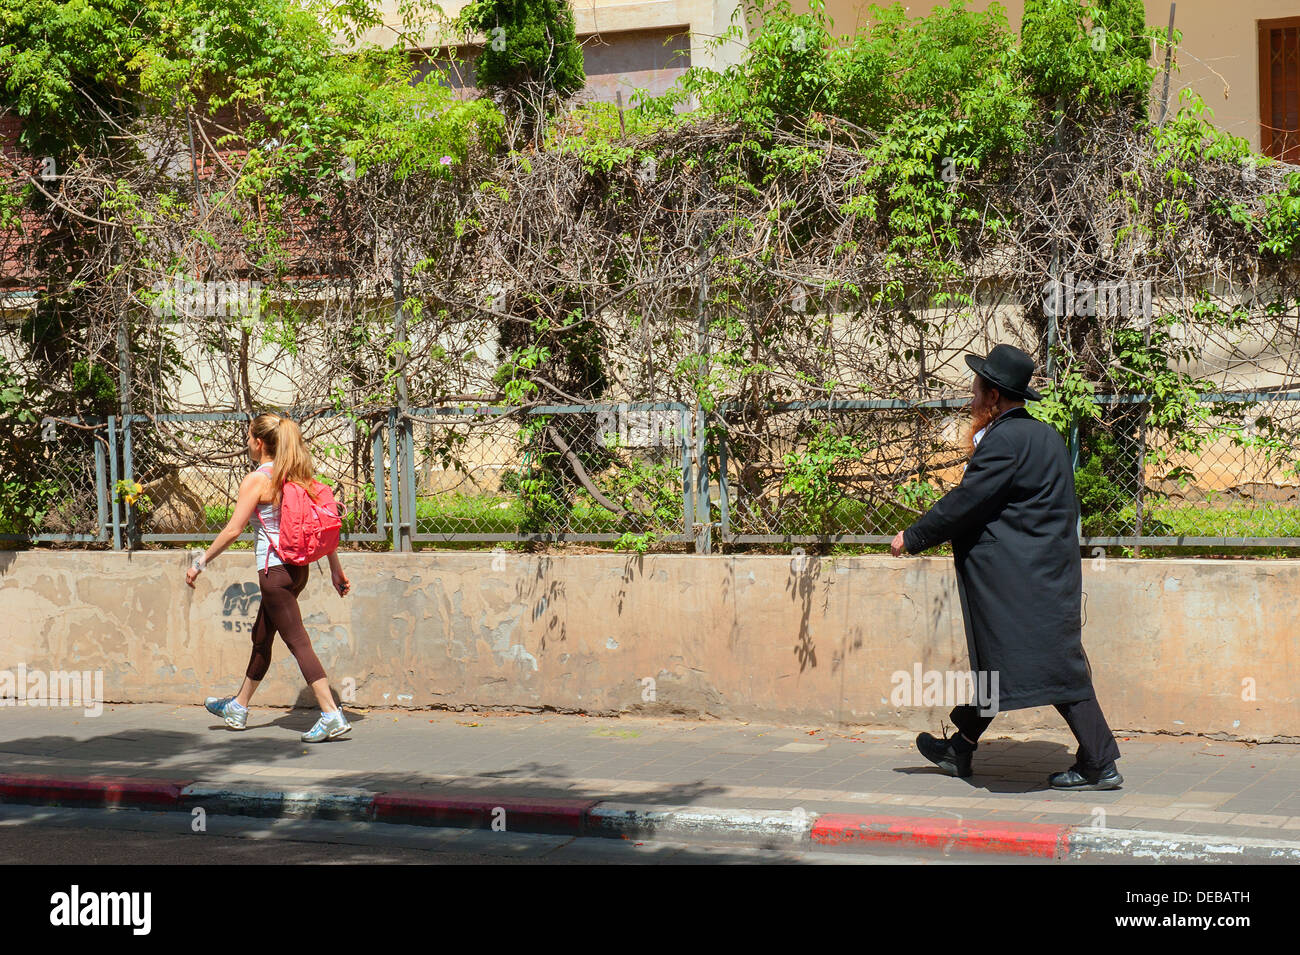 An Orthodox Jew and a secular woman walking in Rothschild Boulevard, Tel Aviv, Israel - Stock Image